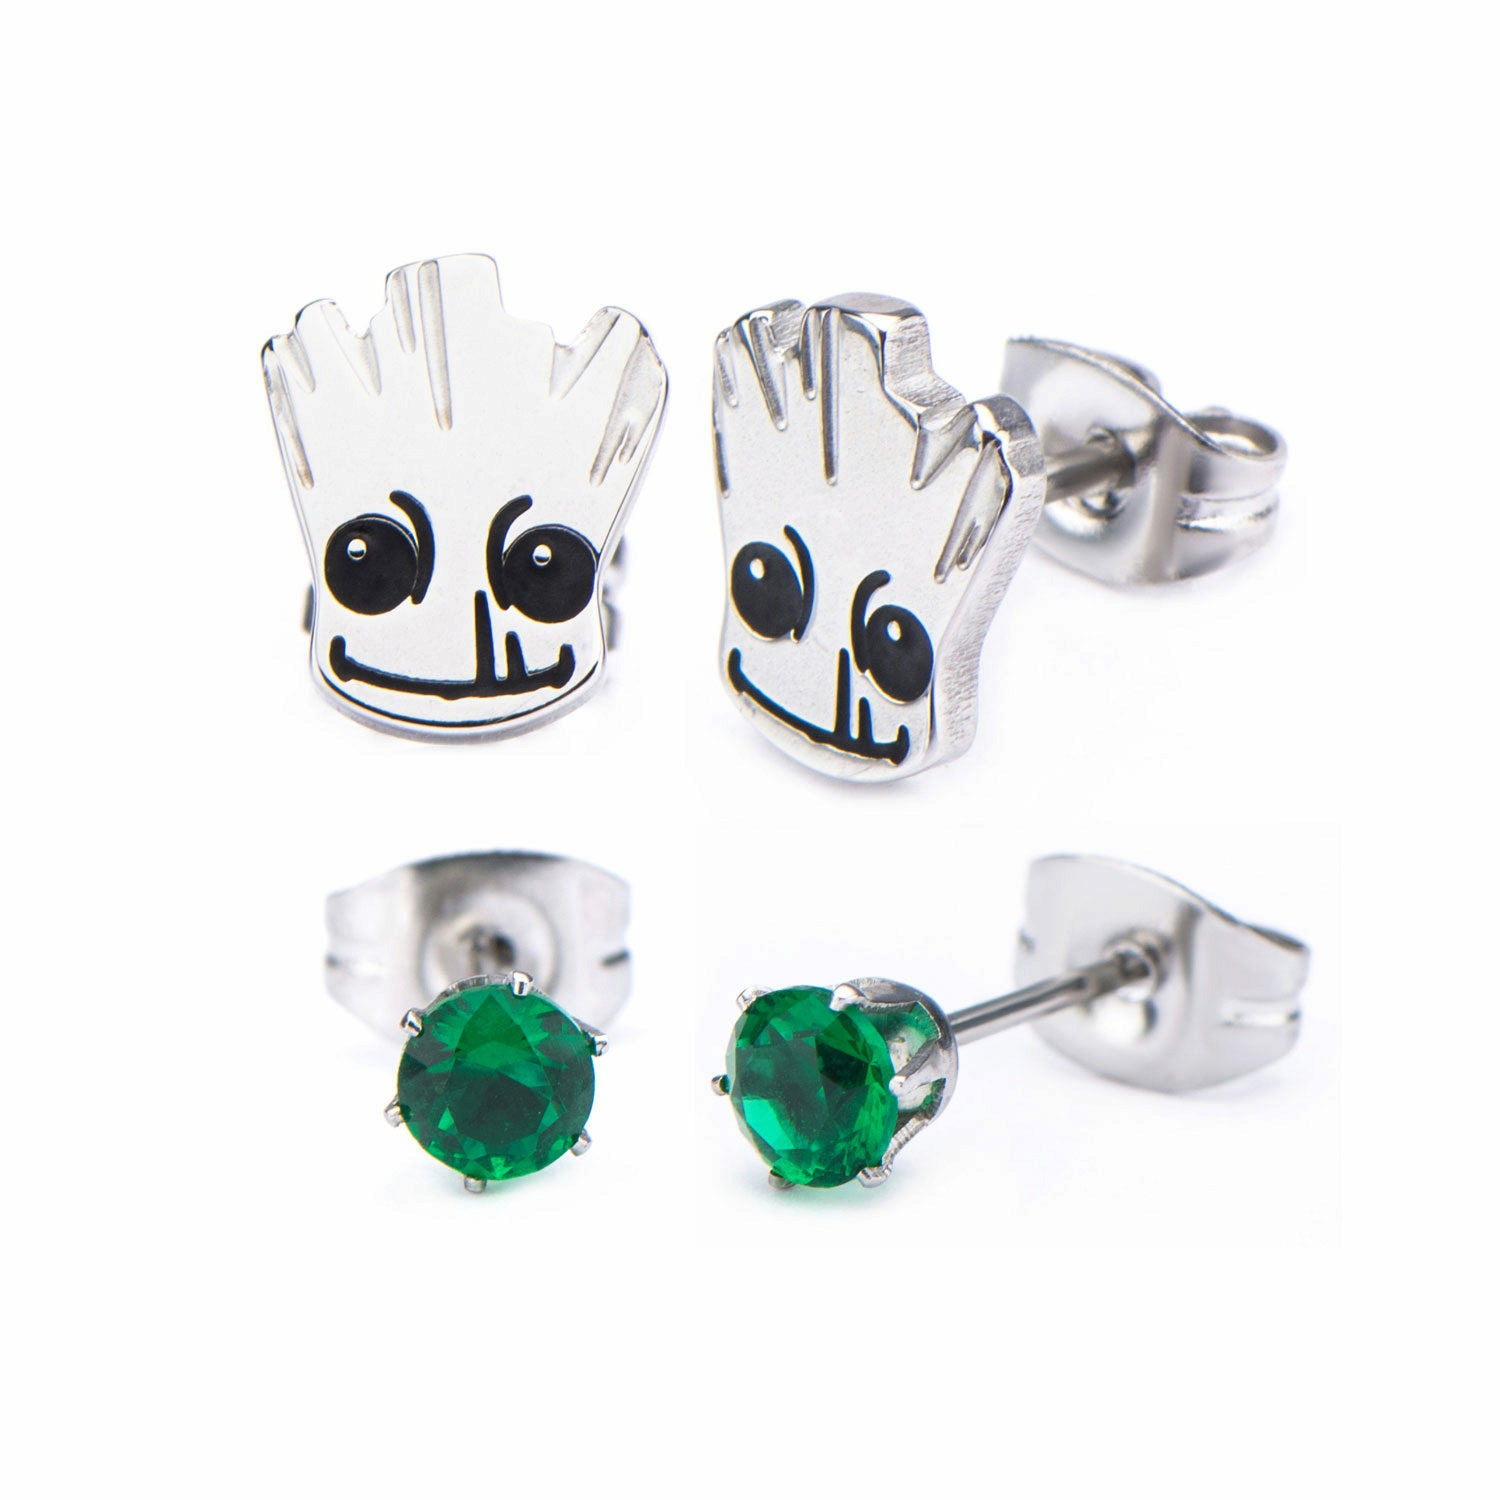 Marvel Guardians of the Galaxy Groot Stainless Steel Stud Earring Set